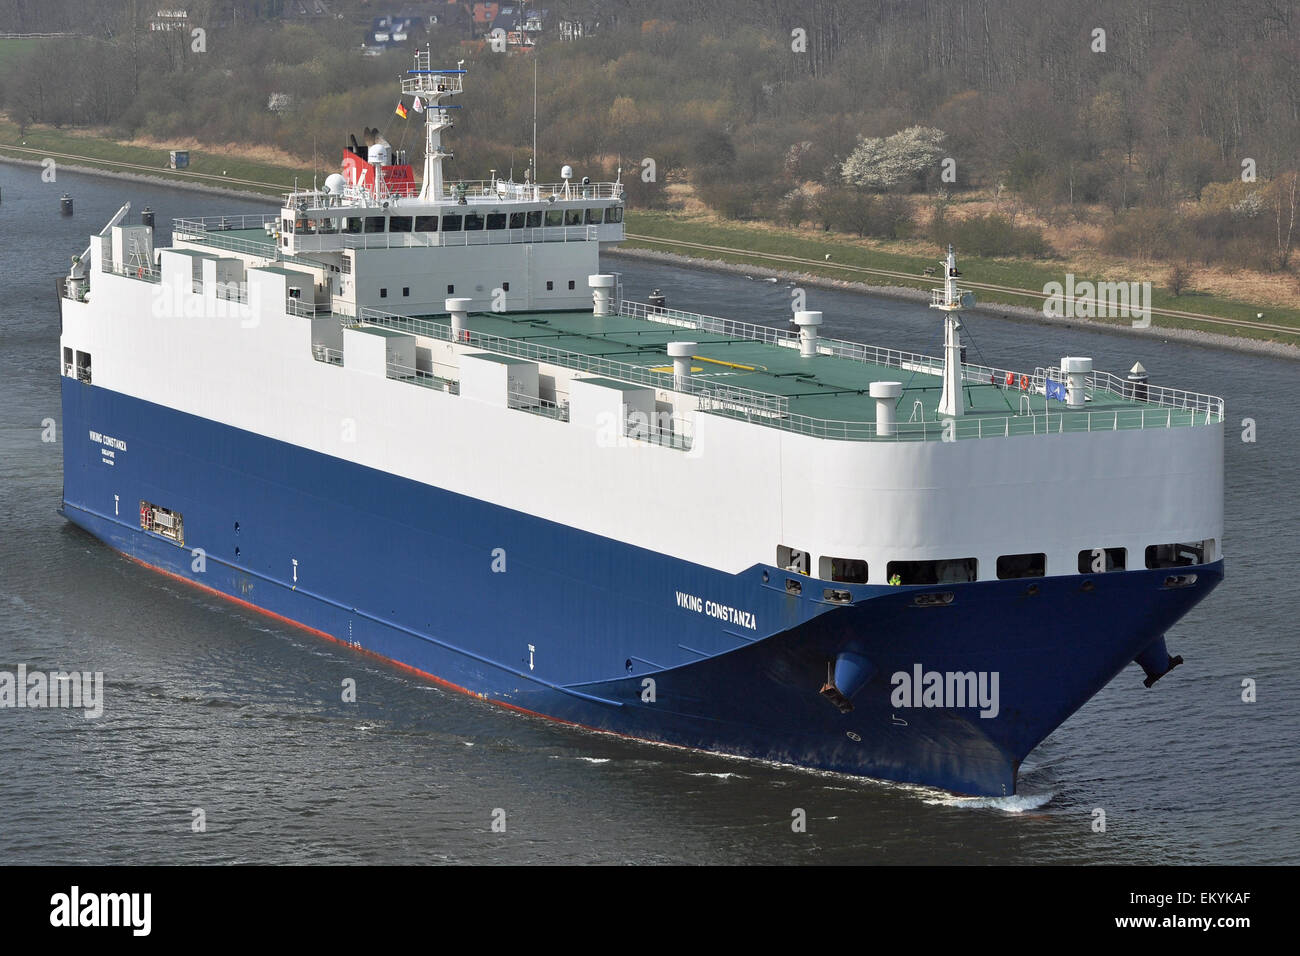 Carcarrier Viking Constanza - Stock Image